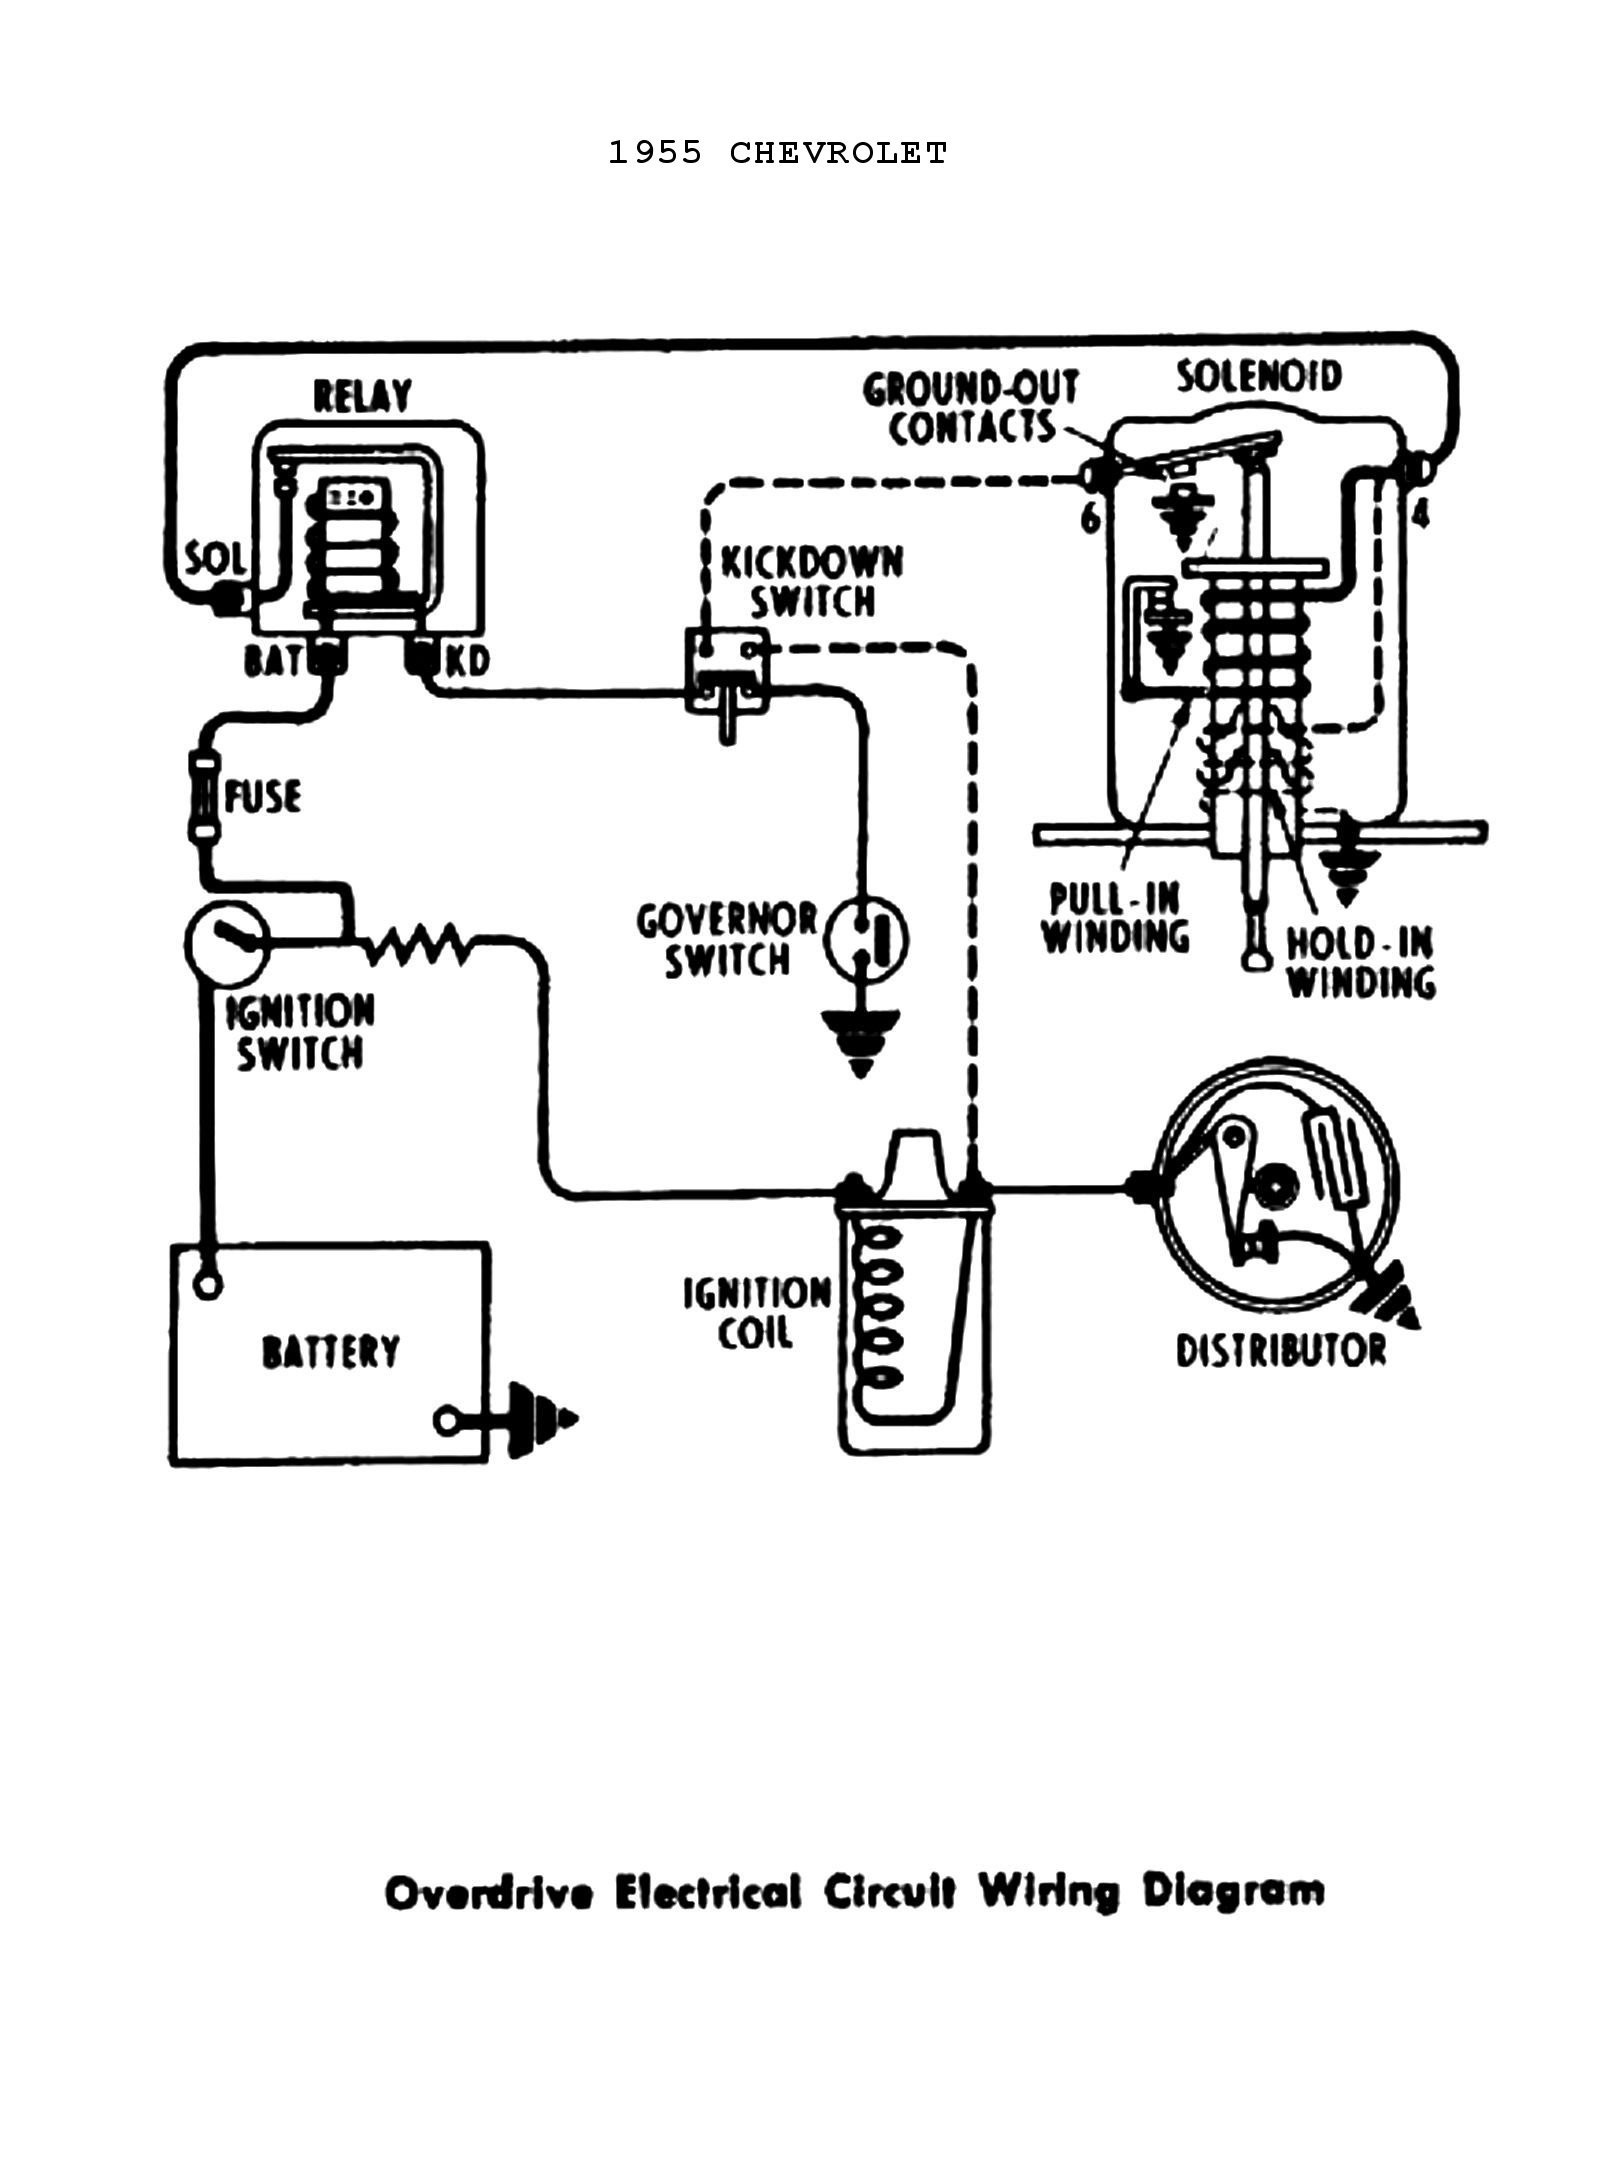 Wiring diagram coil ignition hobbiesxstyle